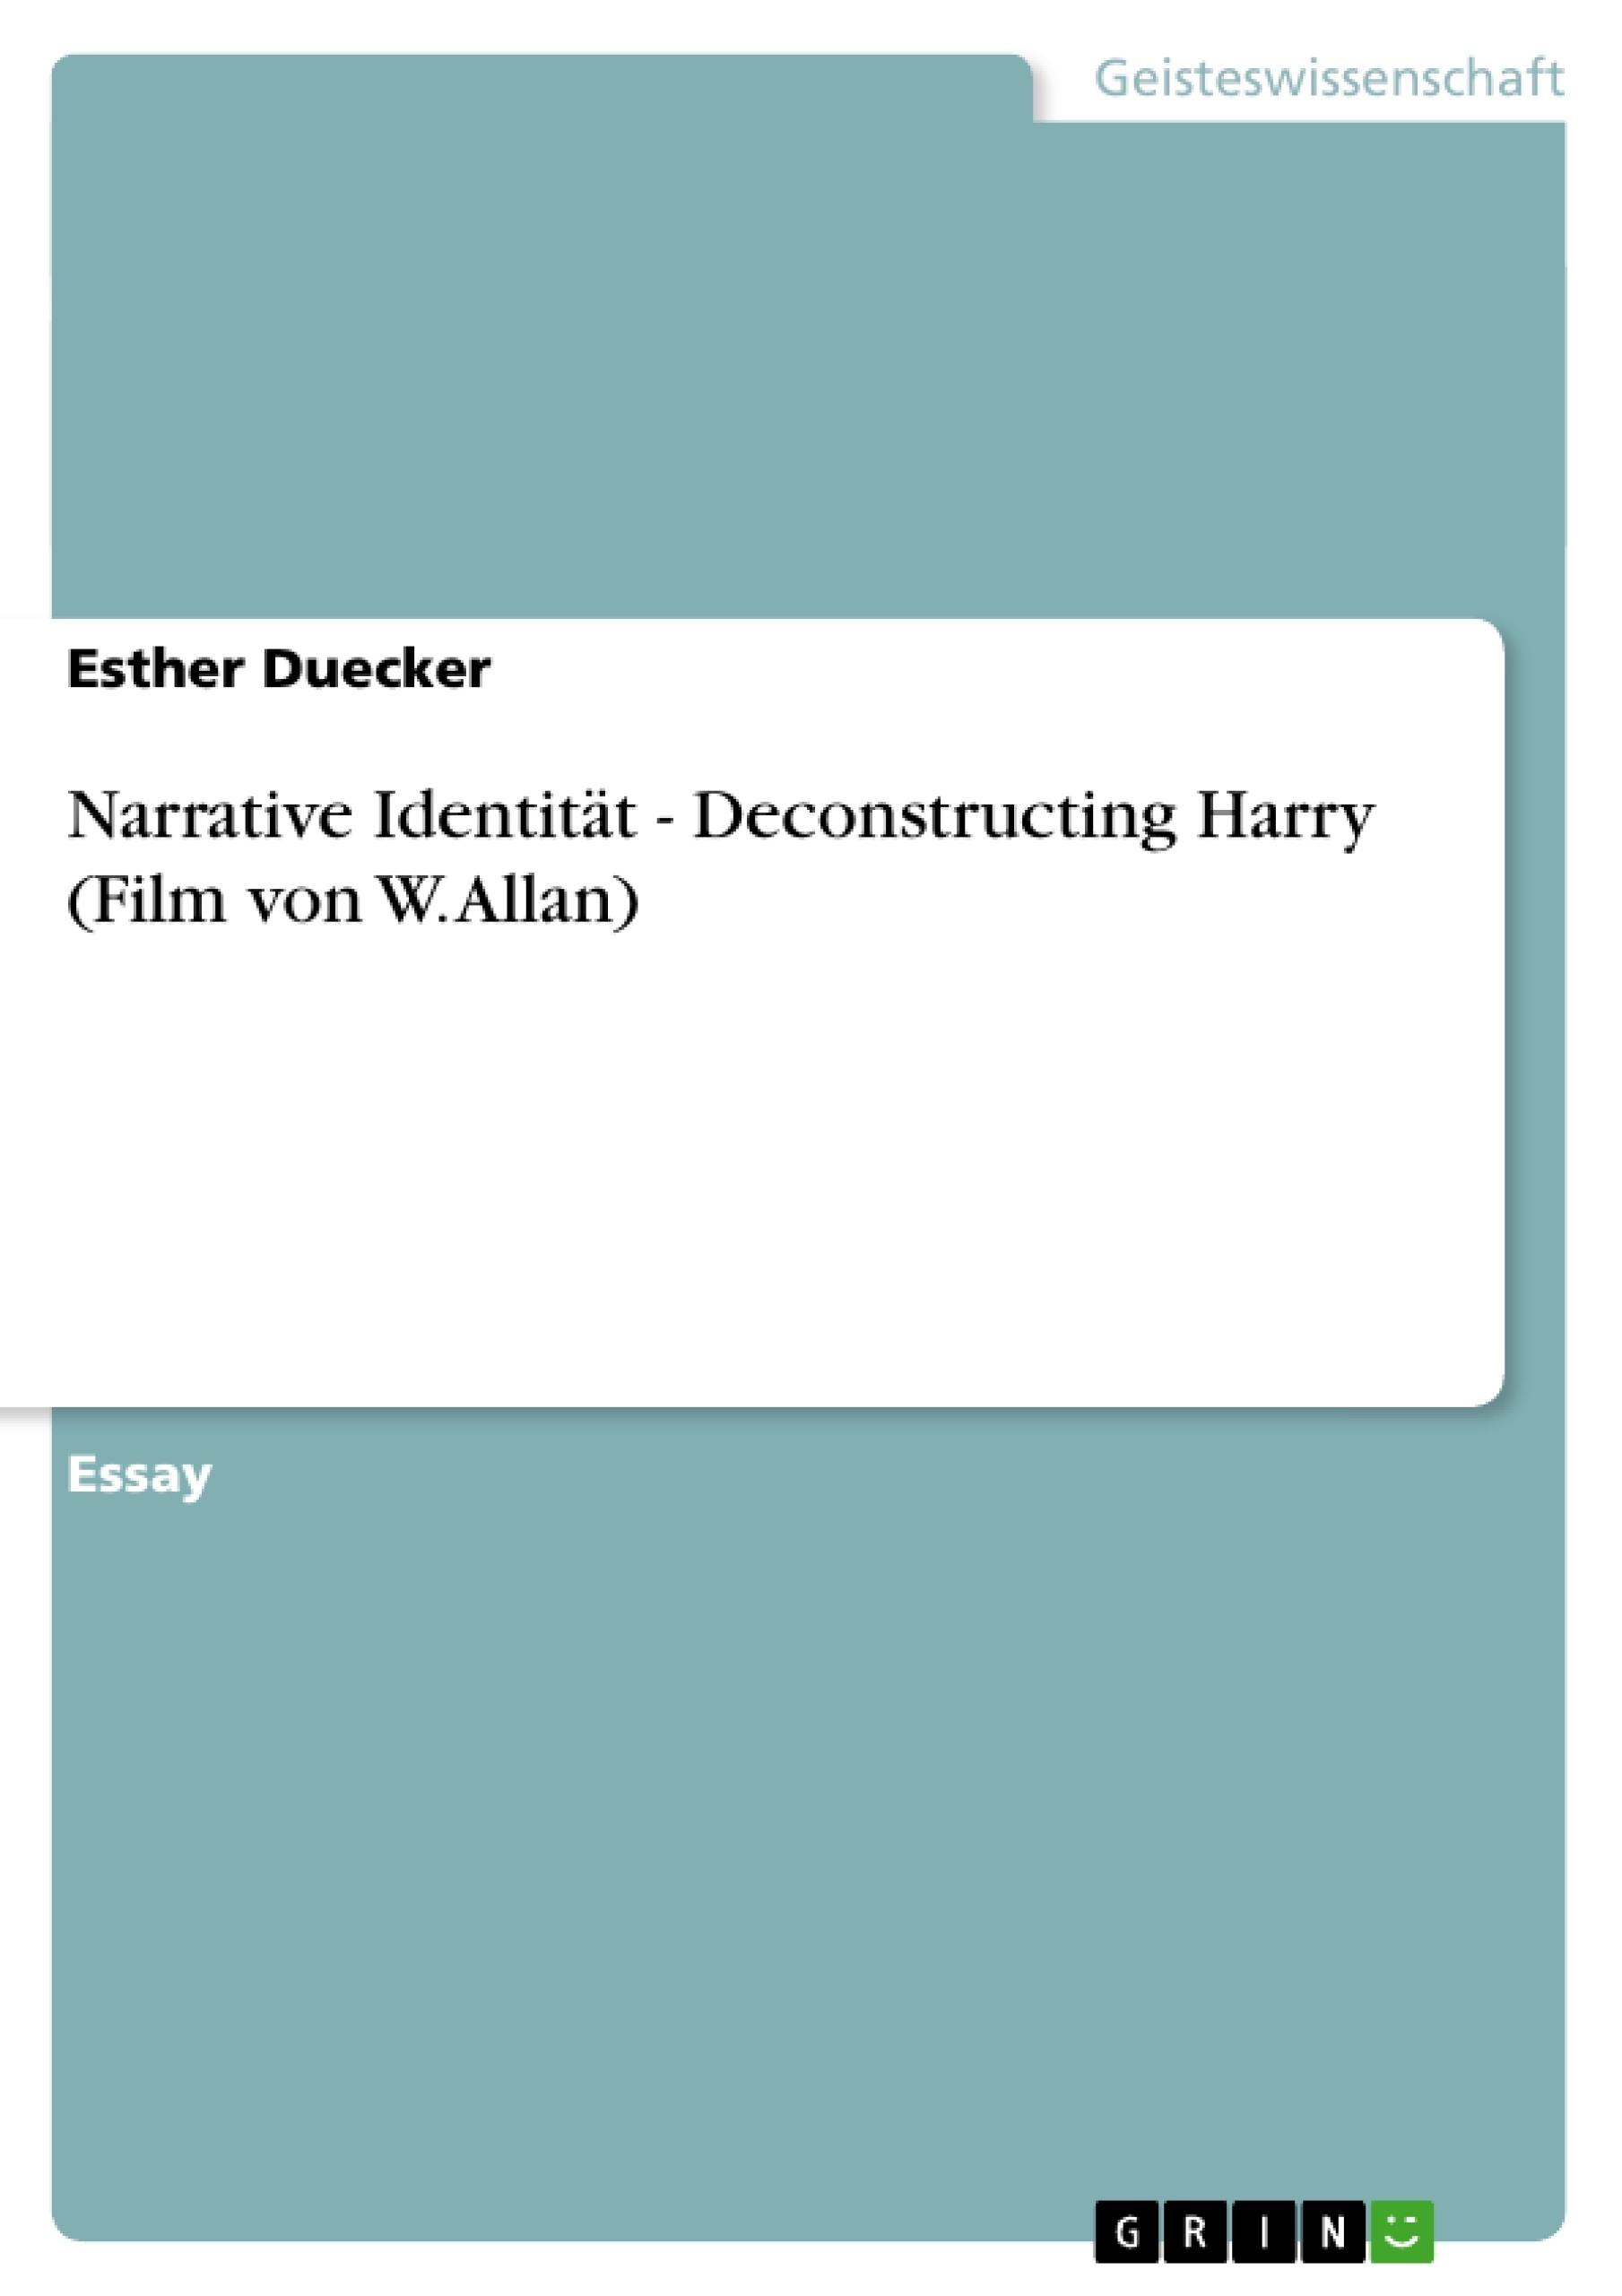 Titel: Narrative Identität - Deconstructing Harry (Film von W. Allan)